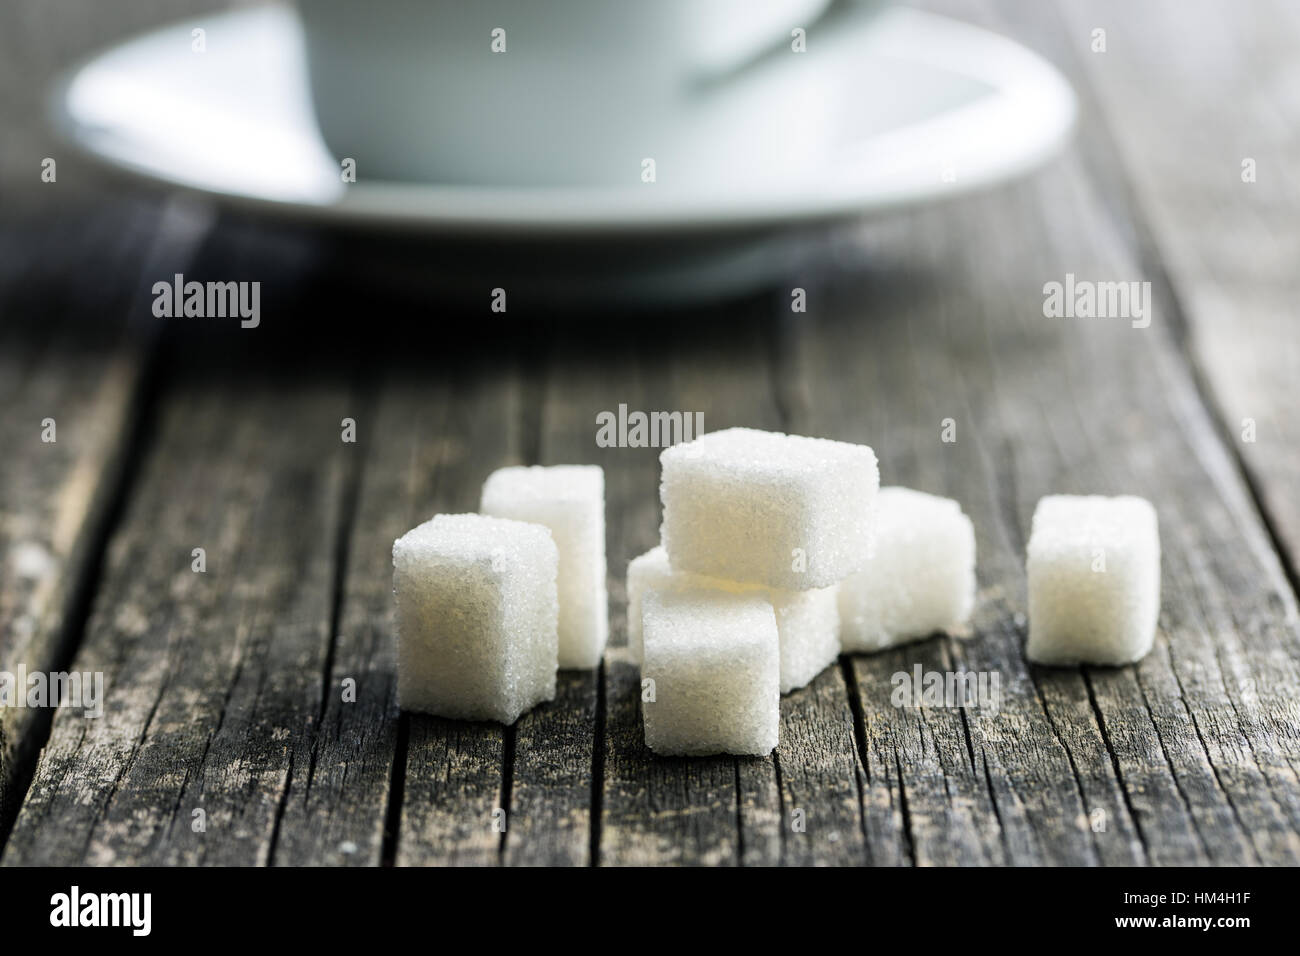 Cubes de sucre blanc sur la vieille table en bois. Photo Stock